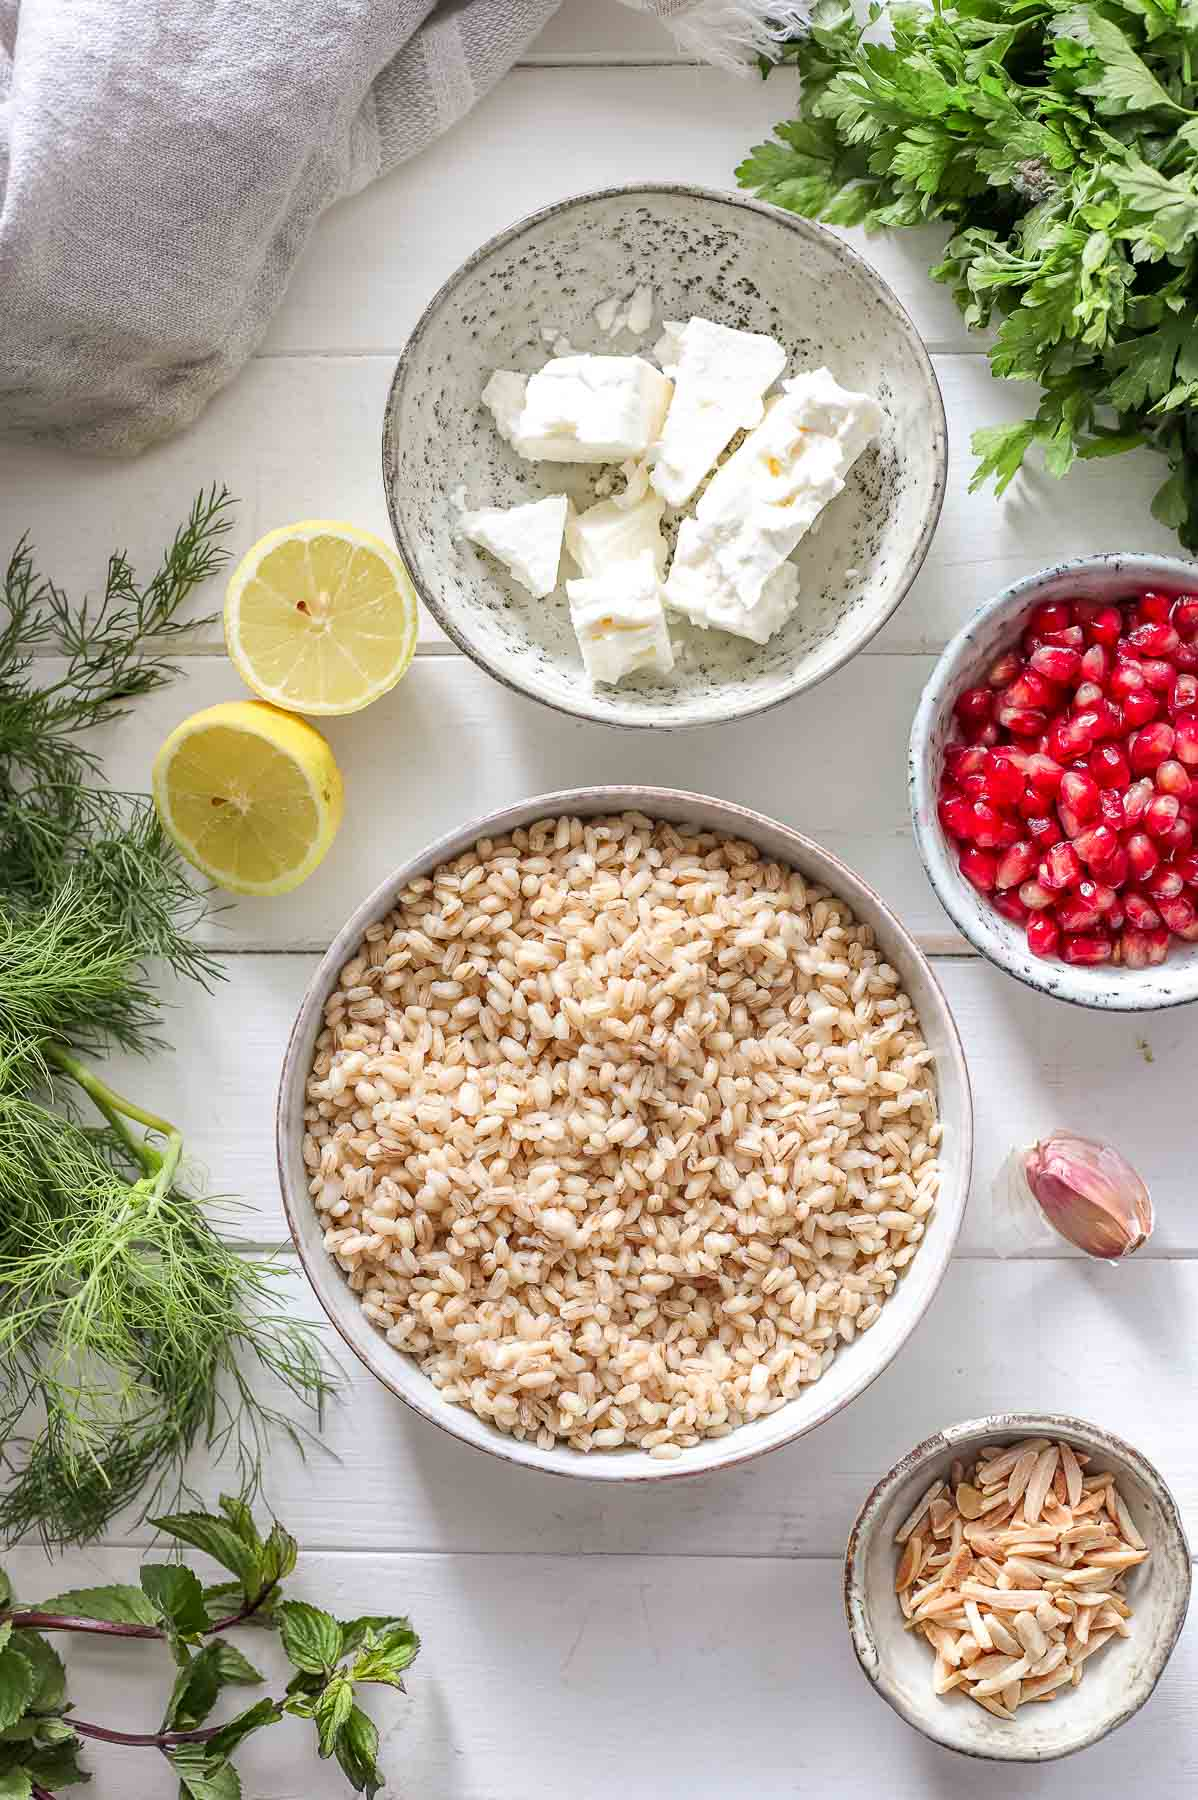 Ingredients for Pearl Barley Salad: Pomegranate, Almonds, Feta, Barley and Herbs